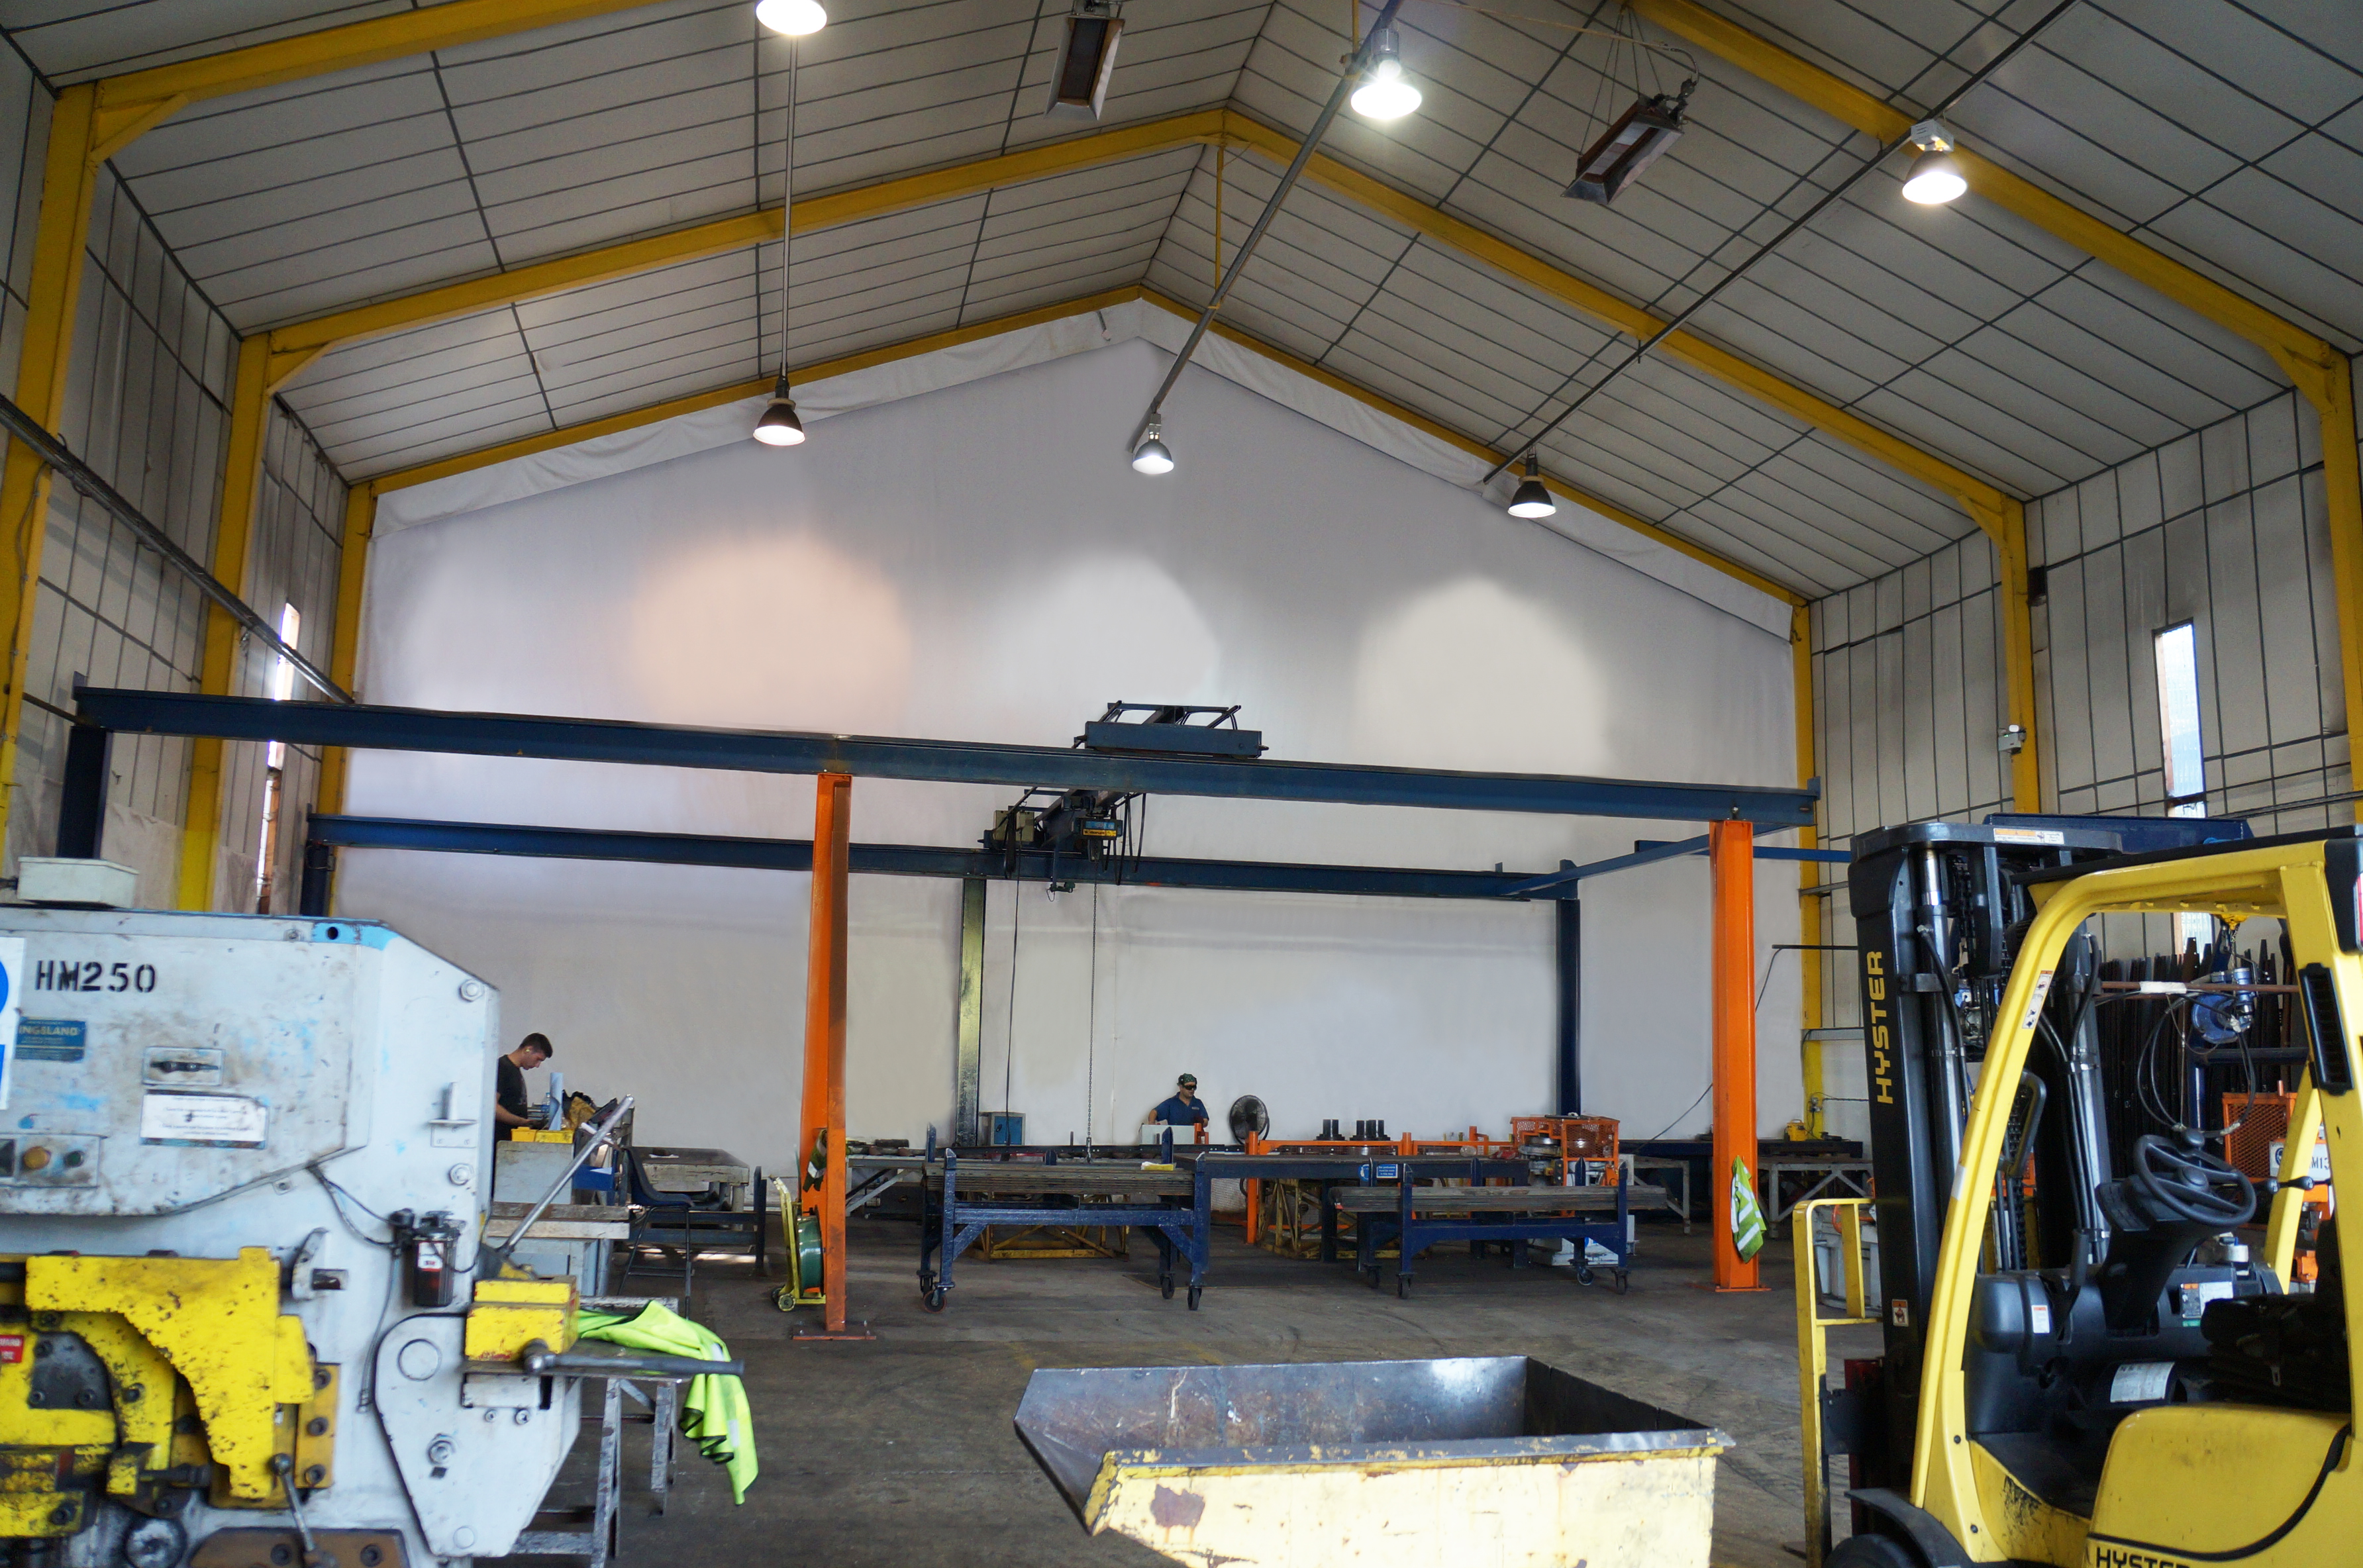 J&C Joel were instructed to design and manufacture a sound insulating drape for Permastore.